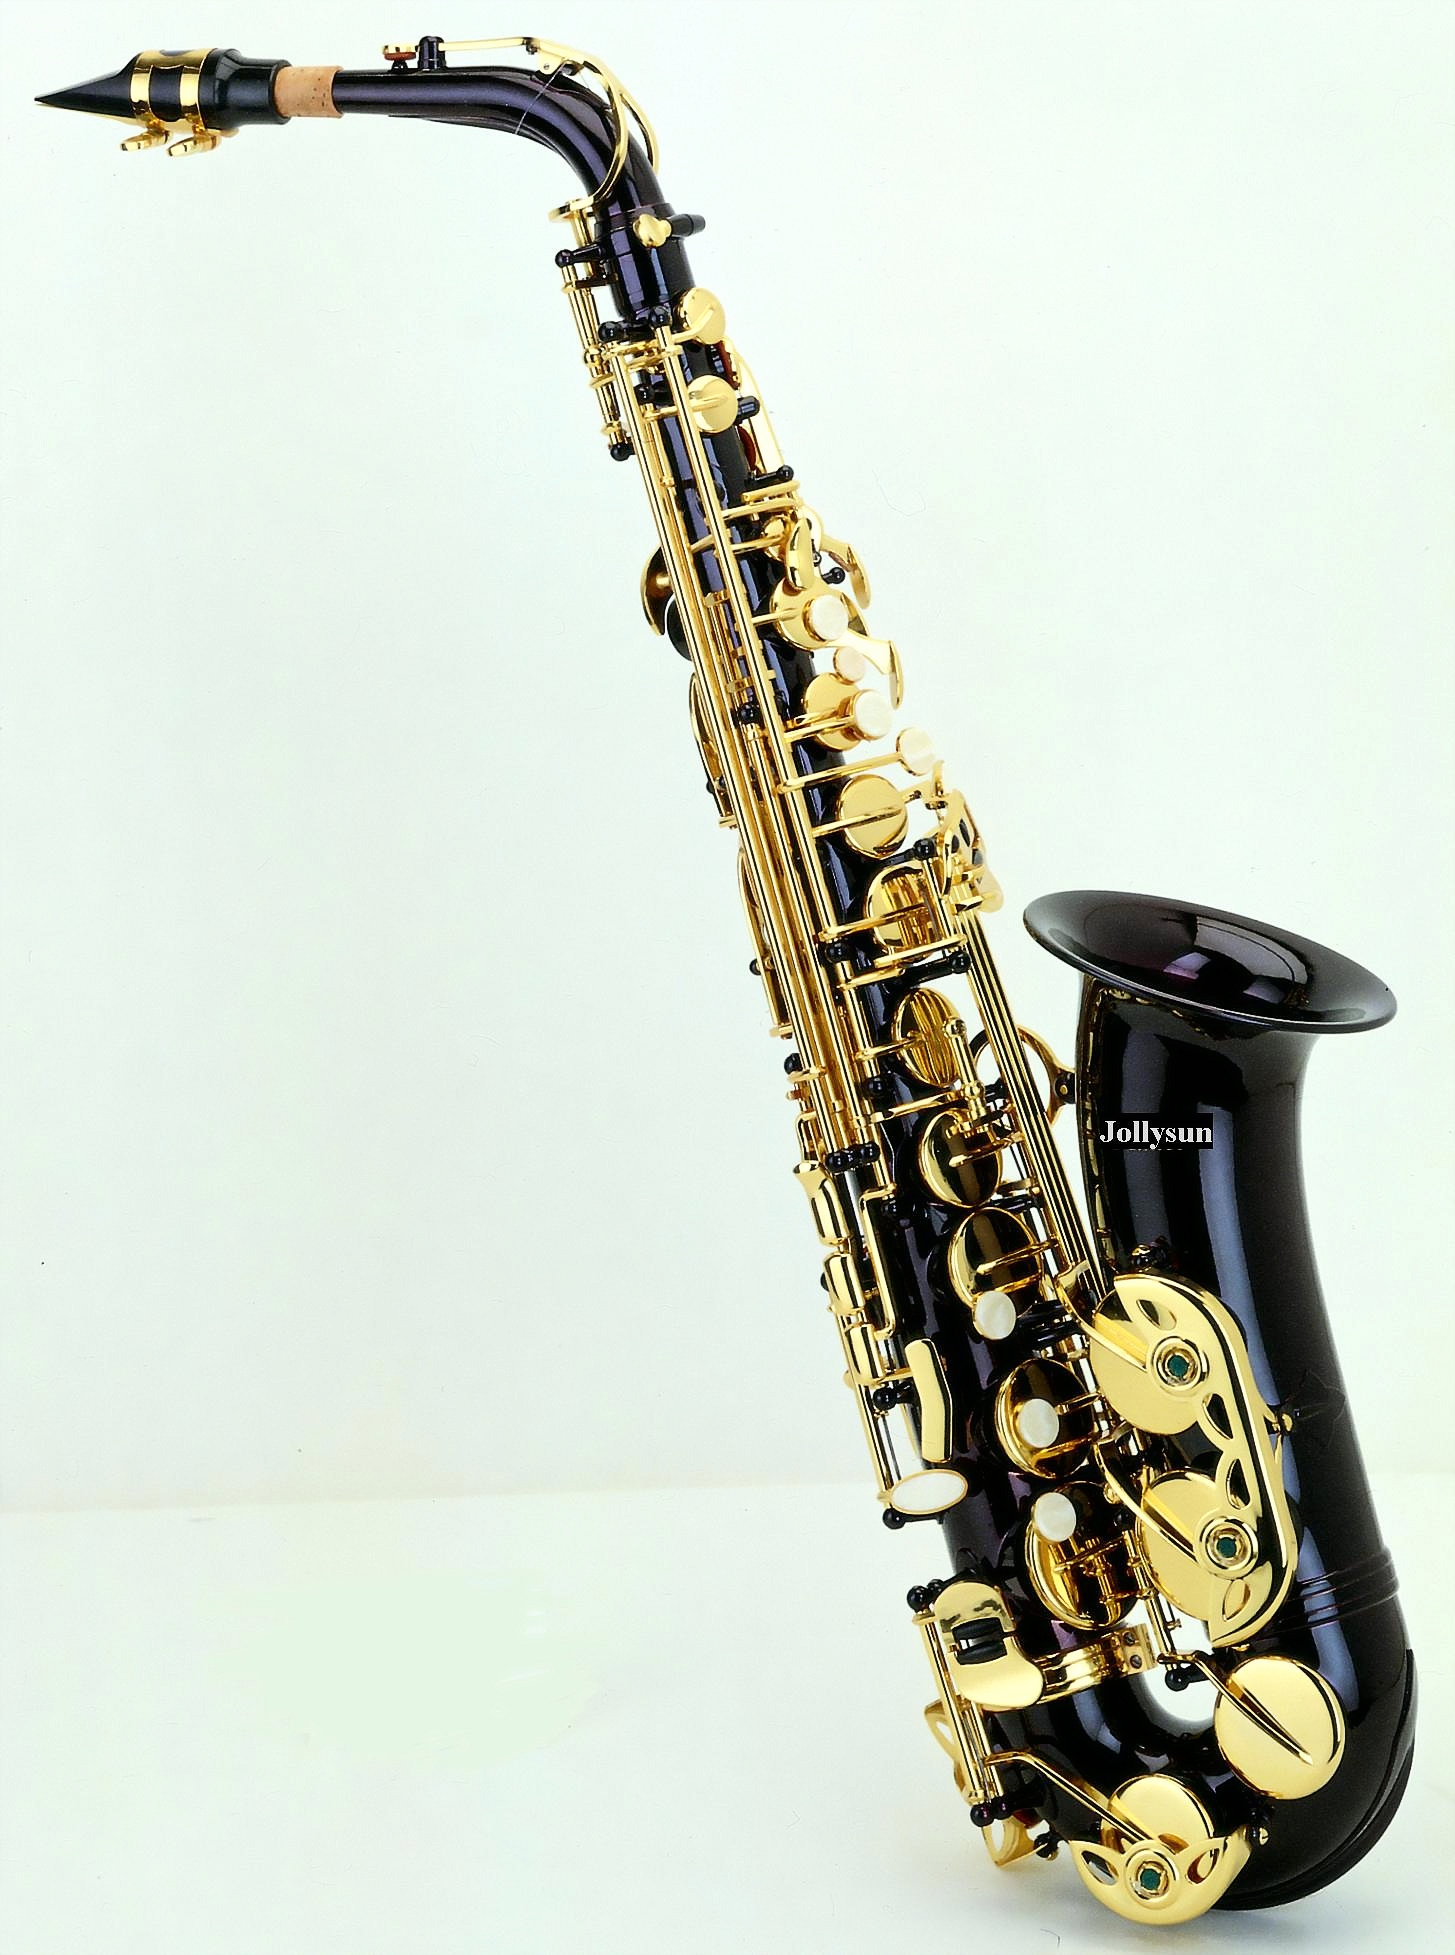 jollysun alto saxophone wind musical instruments shop dropship dubai black manufacturer. Black Bedroom Furniture Sets. Home Design Ideas